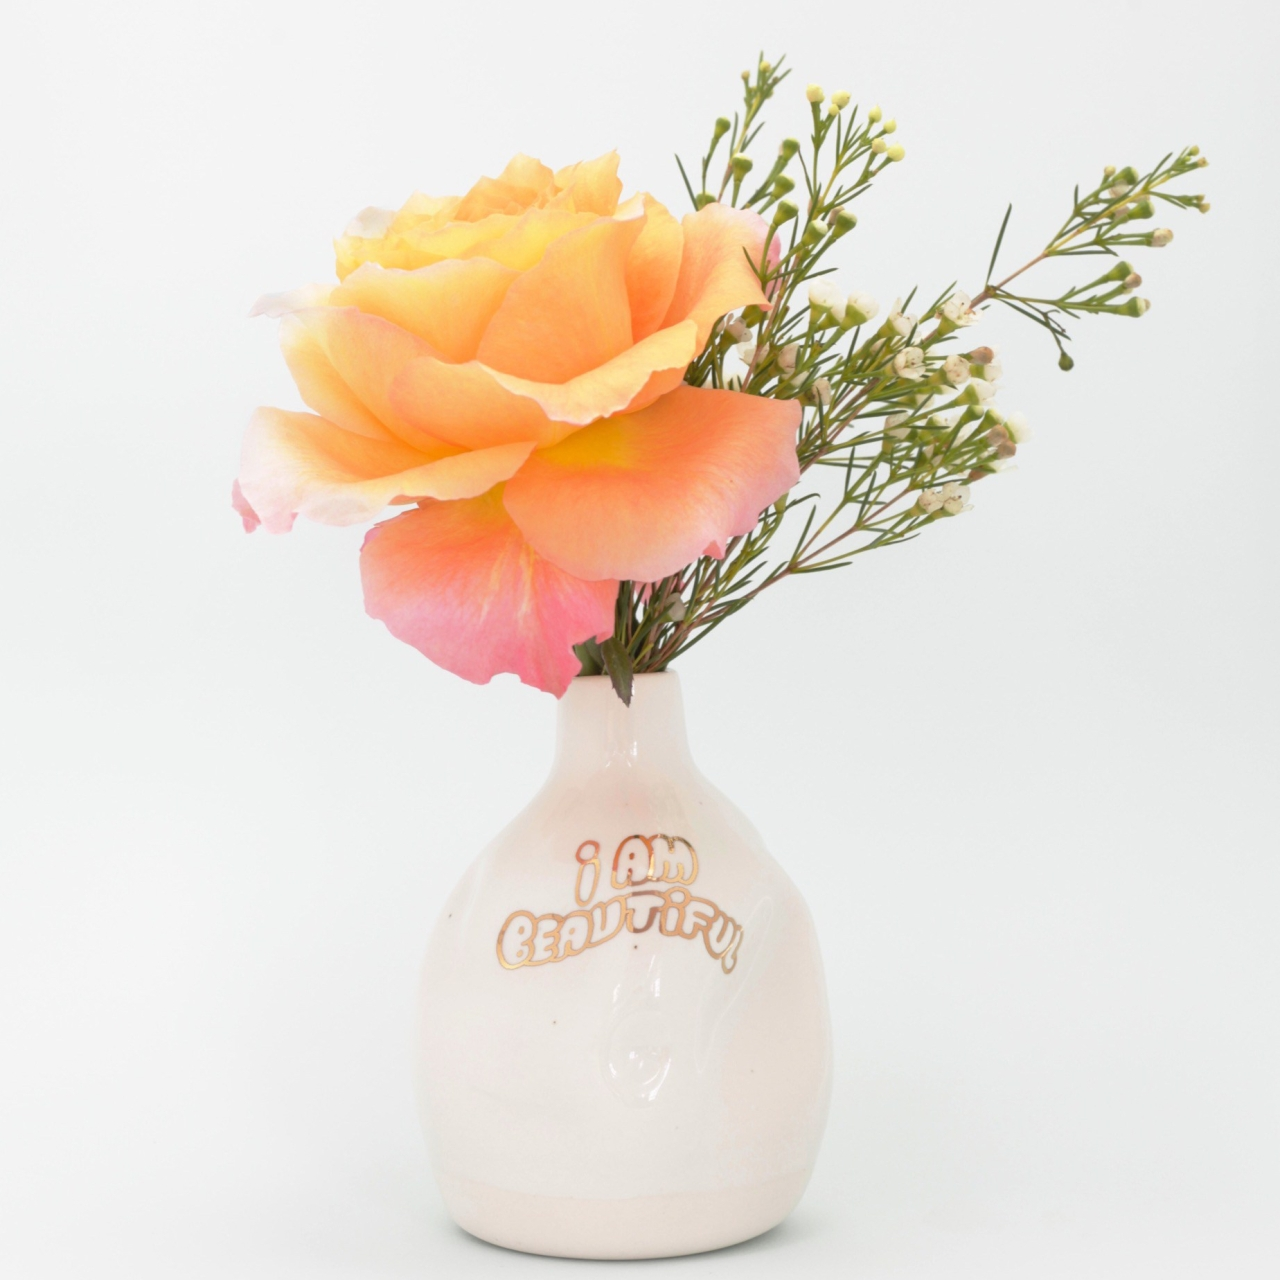 Porcelain vase I am beautiful by Cybele B.Pilon